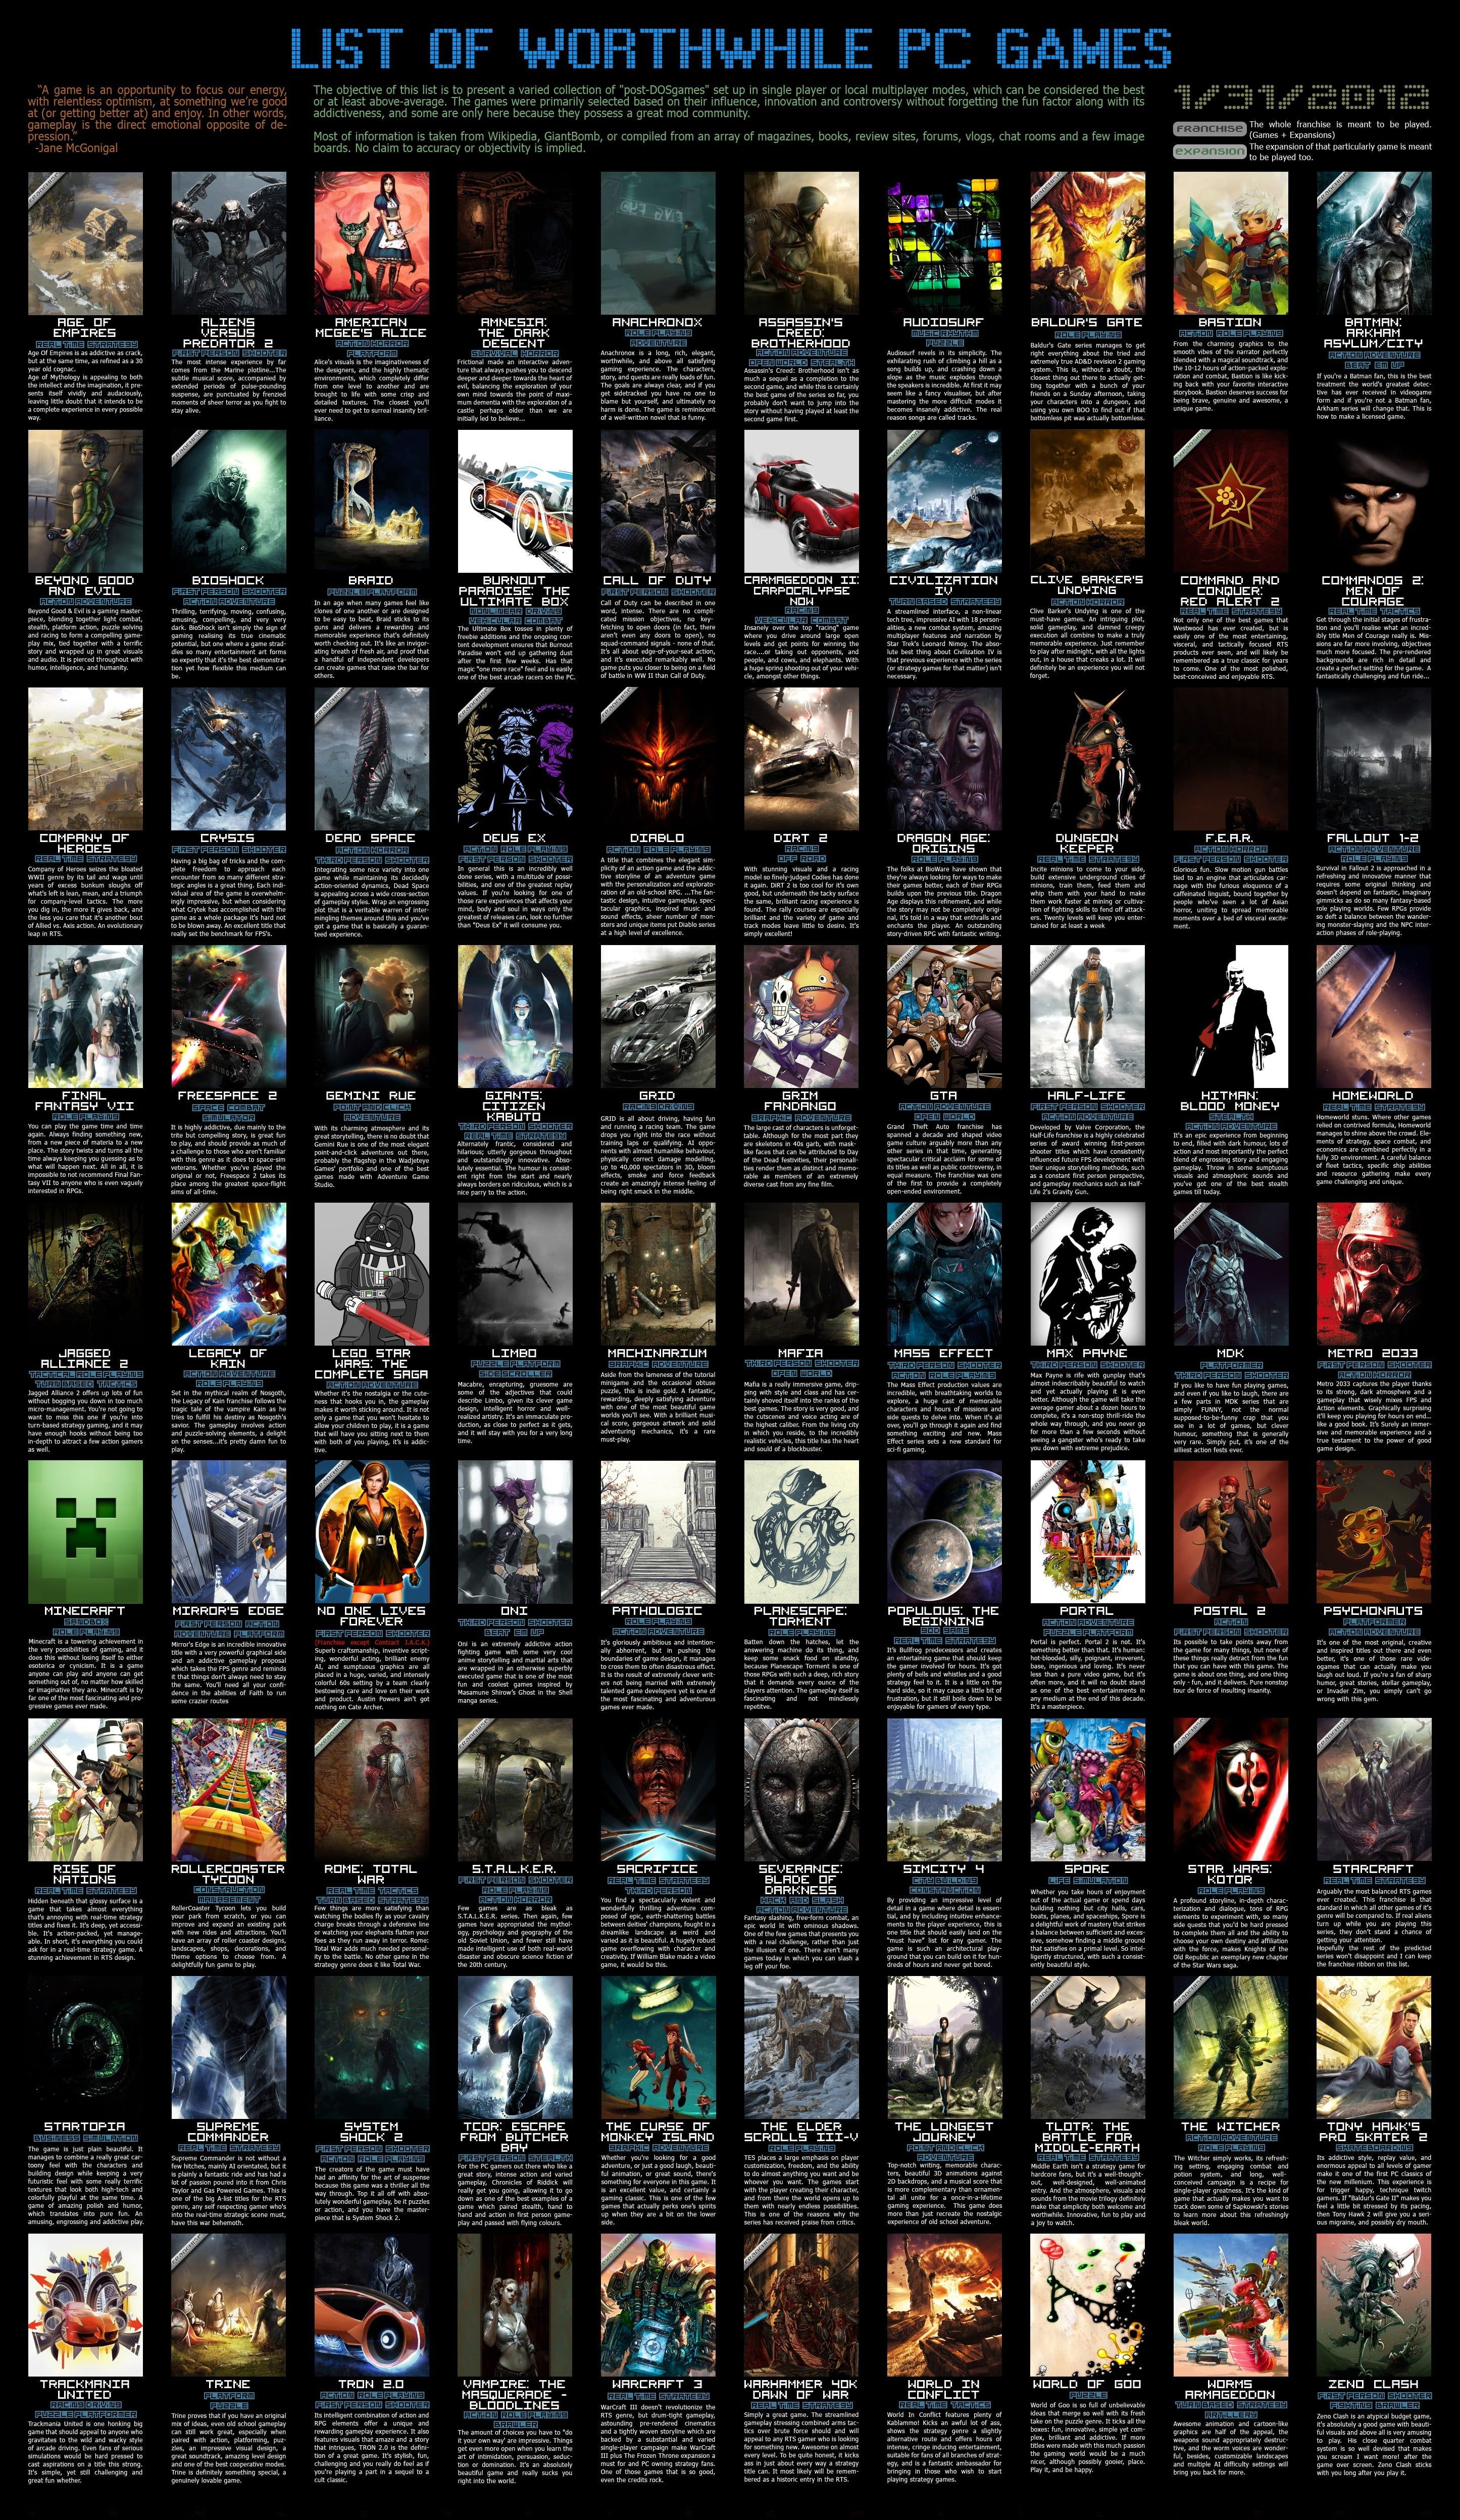 Pc Games Case Lot Assorted Title Pc Game Poster Collage With Black Background Digital Art Video Games Half Life Max P Gaming Pc The Witcher Black Backgrounds